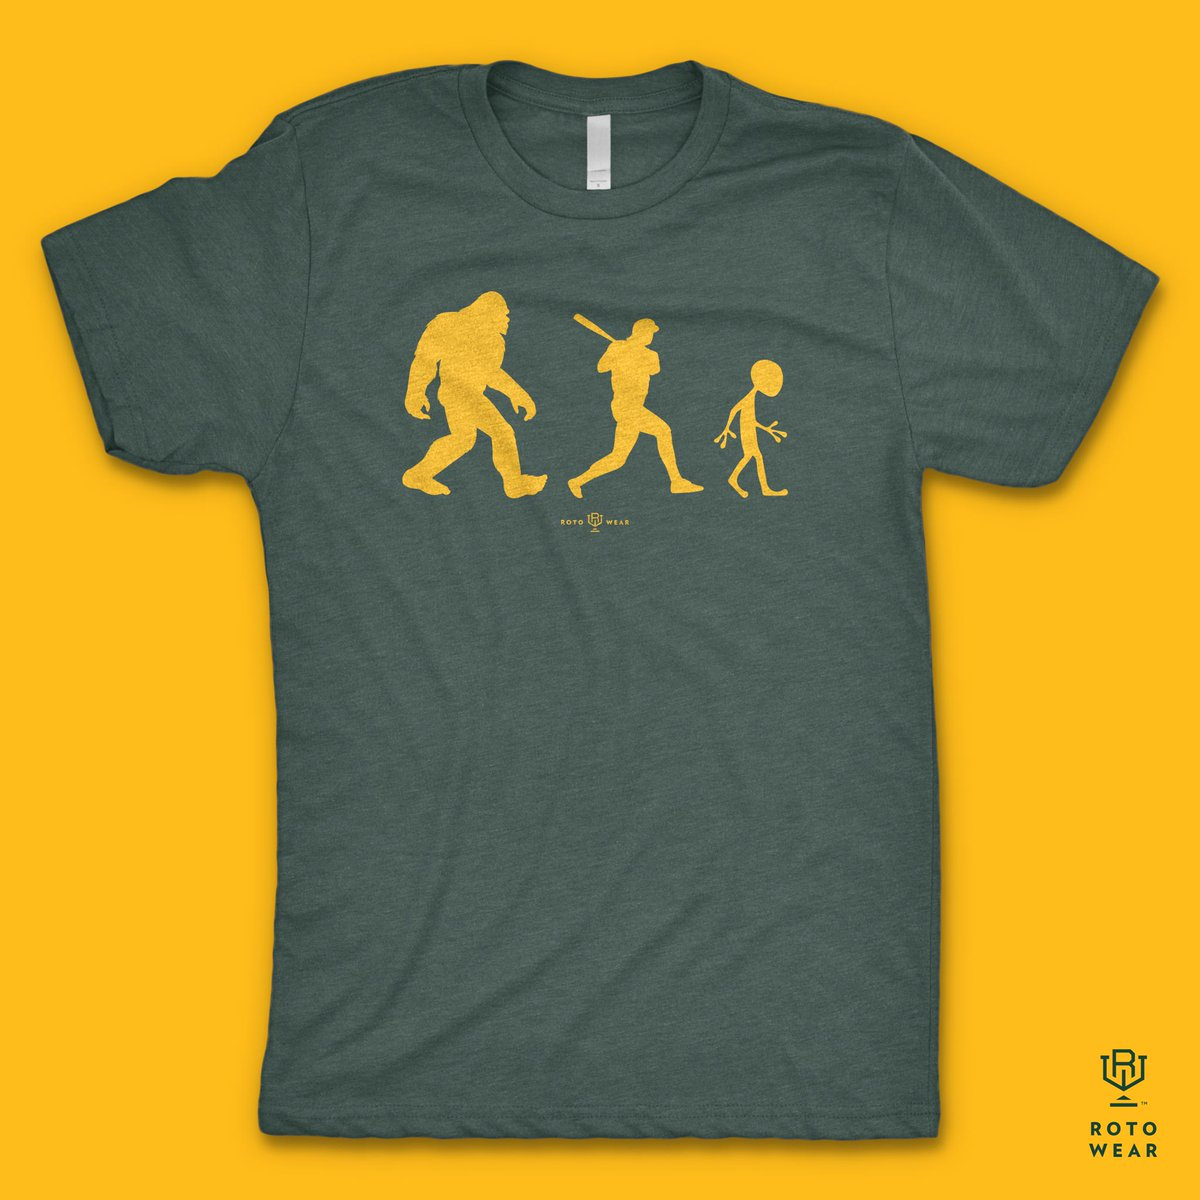 @JoseCanseco 👣👽👕 available only at: https://t.co/pHyz1xkwML https://t.co/wjoctJHYeP